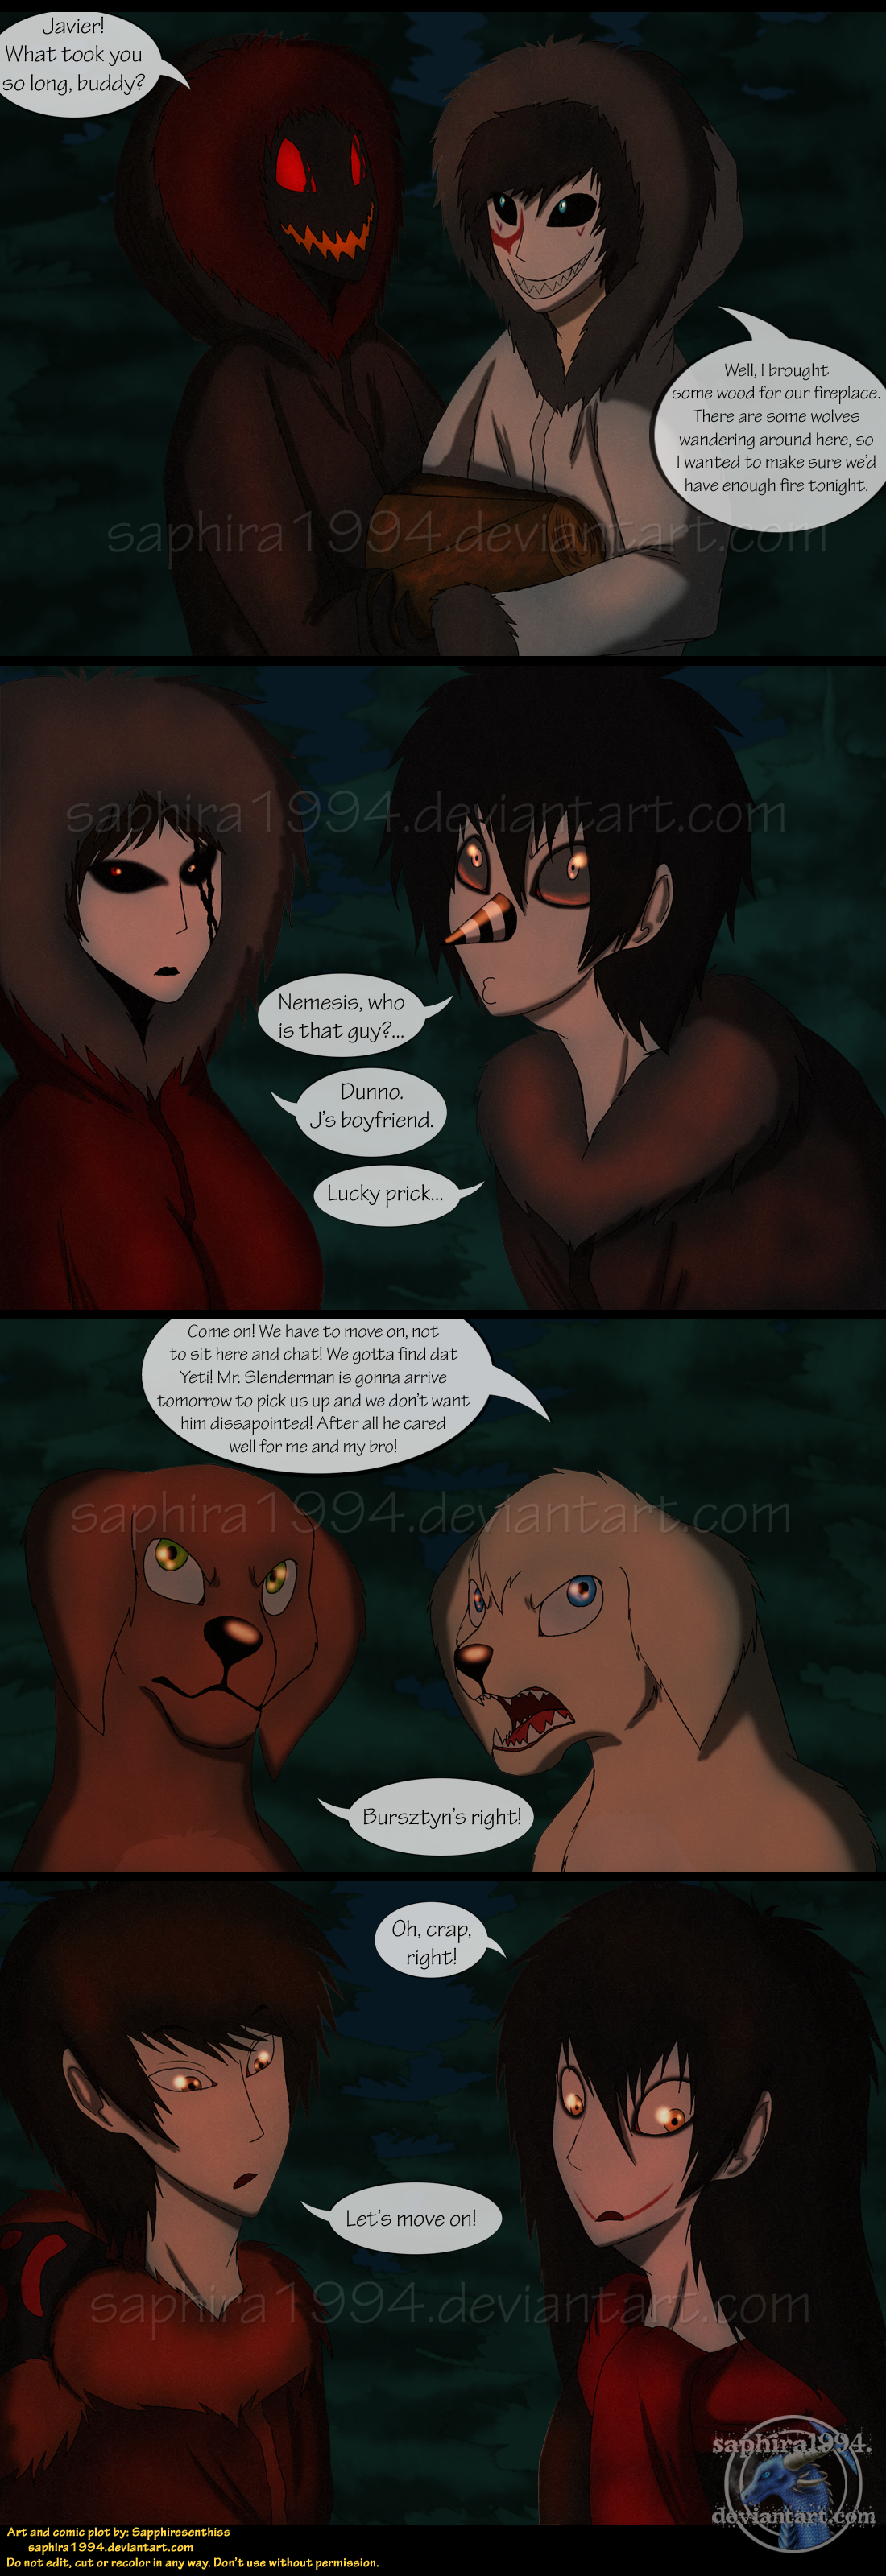 Adventures With Jeff The Killer - PAGE 91 by Sapphiresenthiss